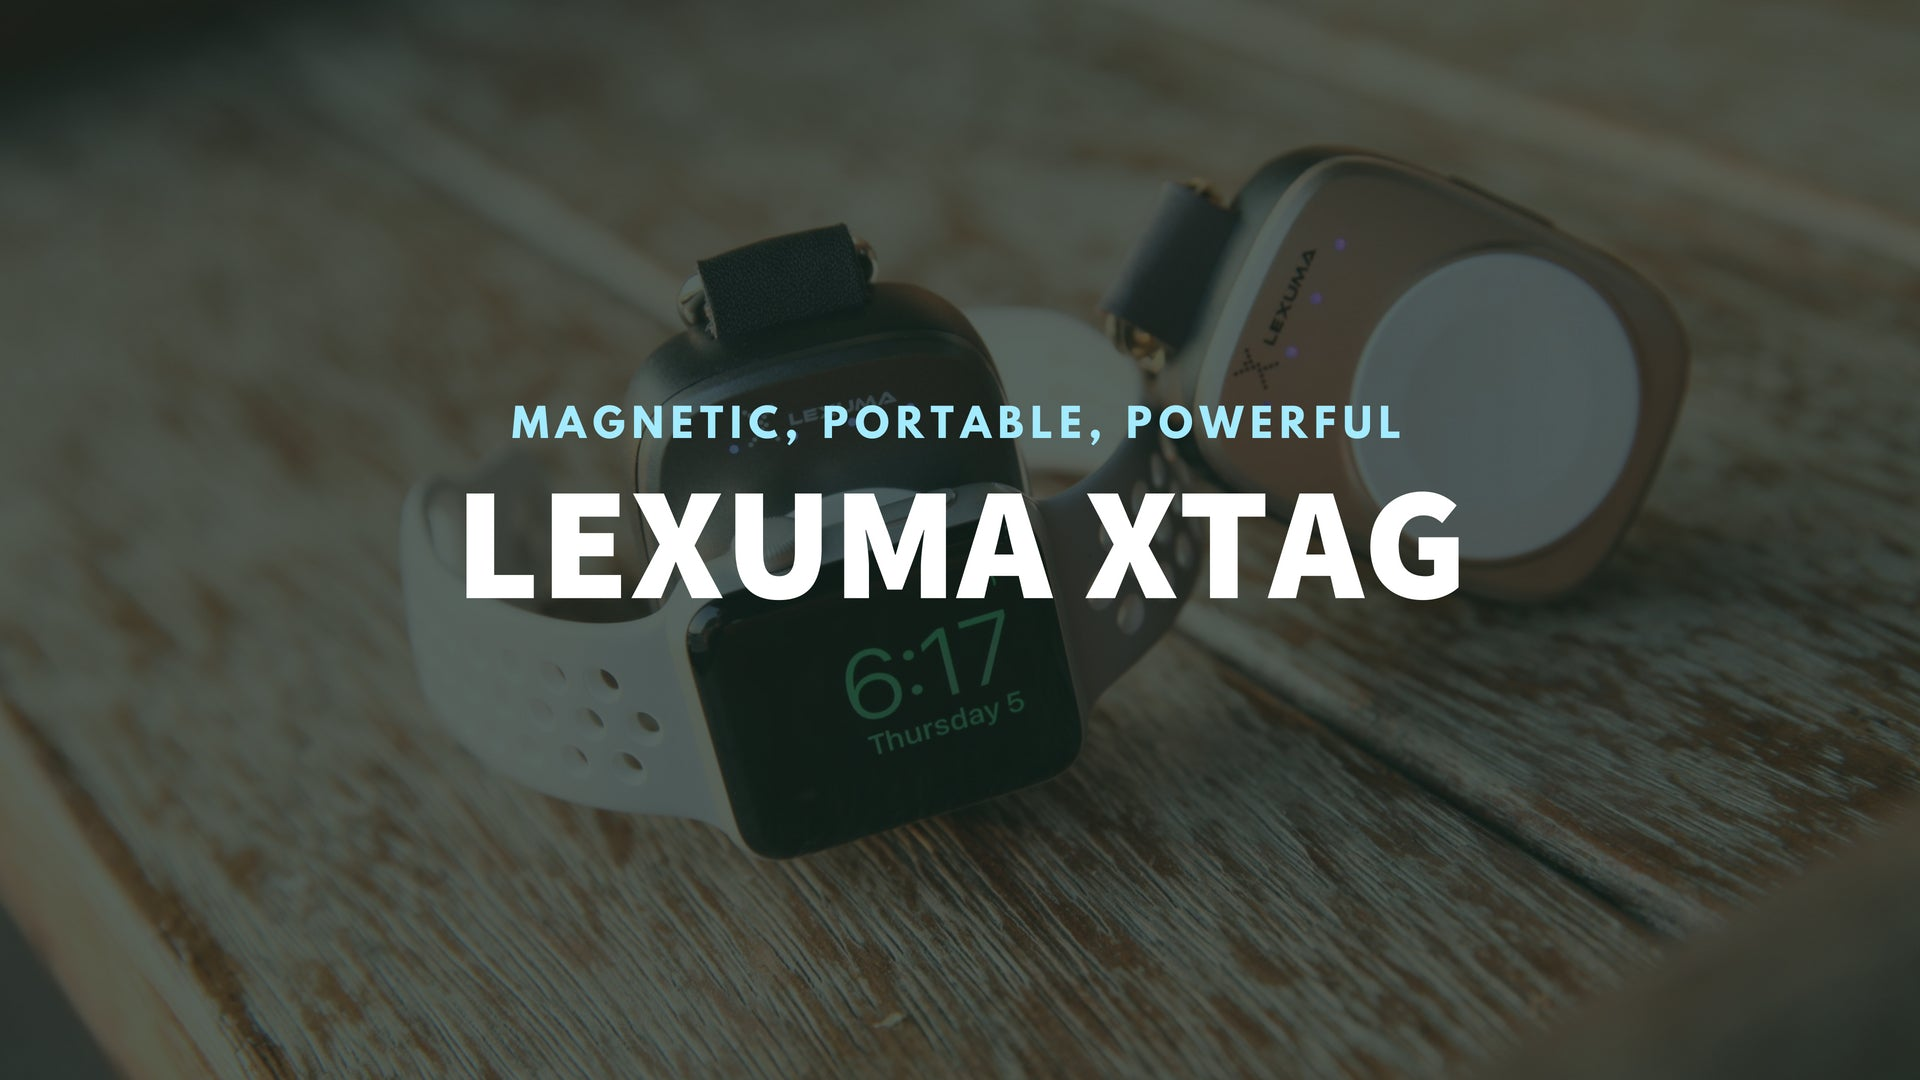 Lexuma XTag Apple Watch Portable Charger pantheon best portable mini keychain power bank case series 4 wireless charging belkin valet griffin amber charging case batterypro smashell power case mipow 2-in-1 keychain case capshi portable wireless charge best aftermarket charging case wireless charging case power bank portable adapter wireless mfi certified anker iwatch insignia charging stand target series 4 - iMartCity banner